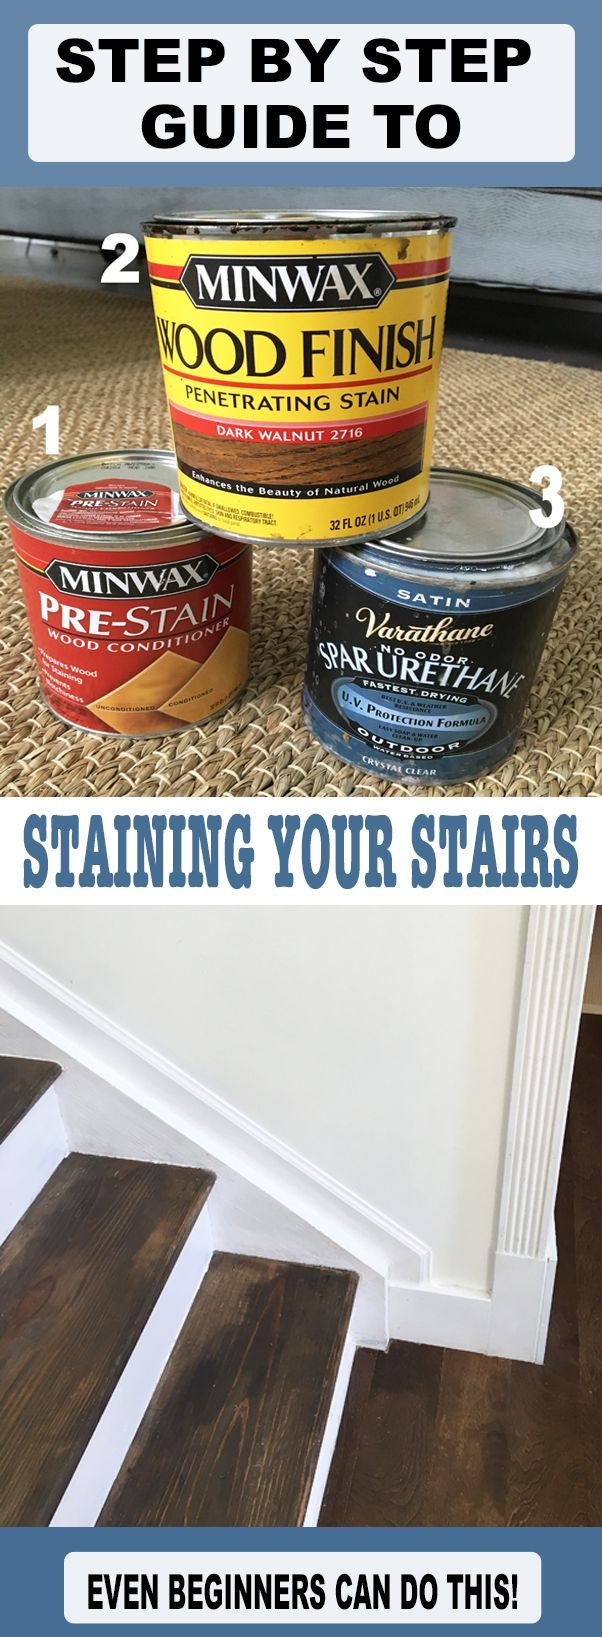 Step By Step Guide to Taking Your Carpeted Stairs to Beautifully Stained Hardwood.